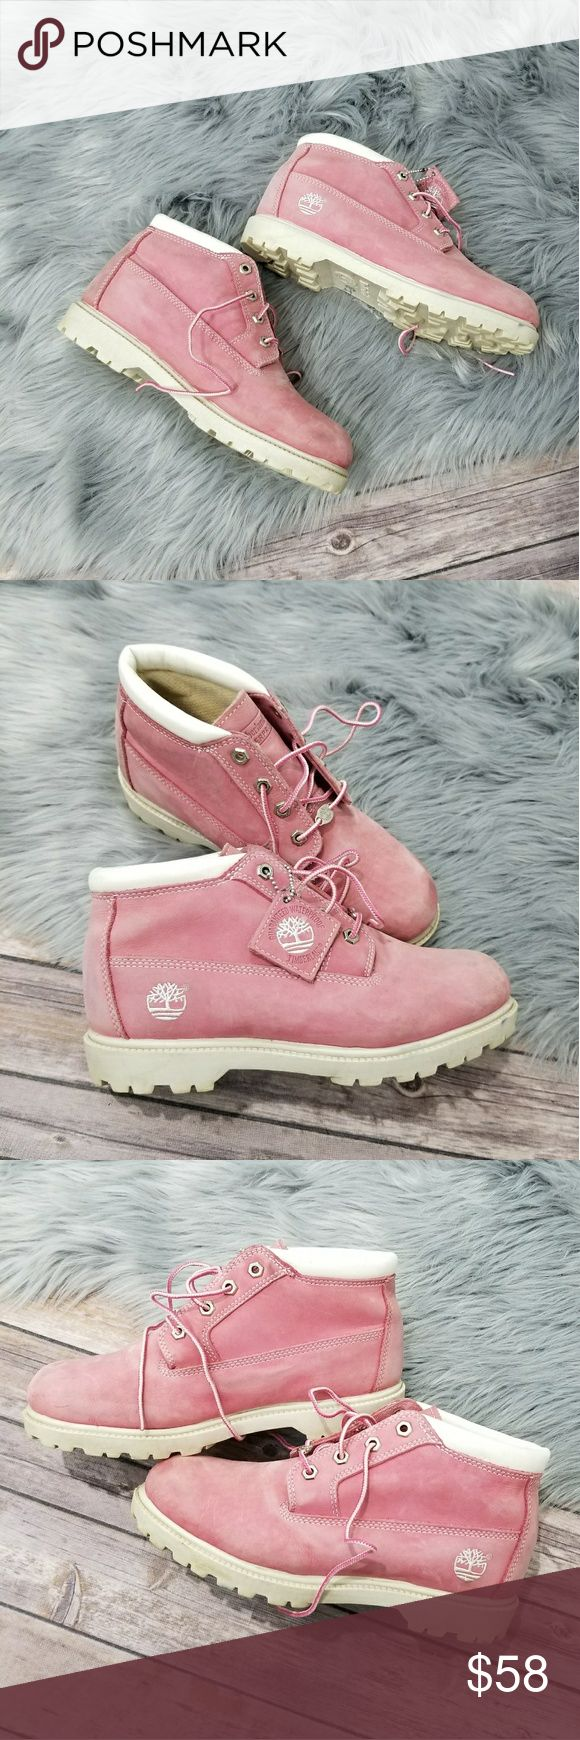 Timberland Pink Nellie Waterproof Chukka Boots Timberland Women's Nellie Waterproof Chukka Boots  Size 9.5 in really good used condition (See Pictures)  Premium full-grain waterproof leather uppers Direct-attach, seam-sealed waterproof construction. Padded collar Laces are made from 100% PET (recycled plastic bottles) Rustproof hardware Exclusive anti-fatigue midsole and removable footbeds. Mesh linings and footbed covers are made from recycled plastic bottles Rubber lug outsole for…